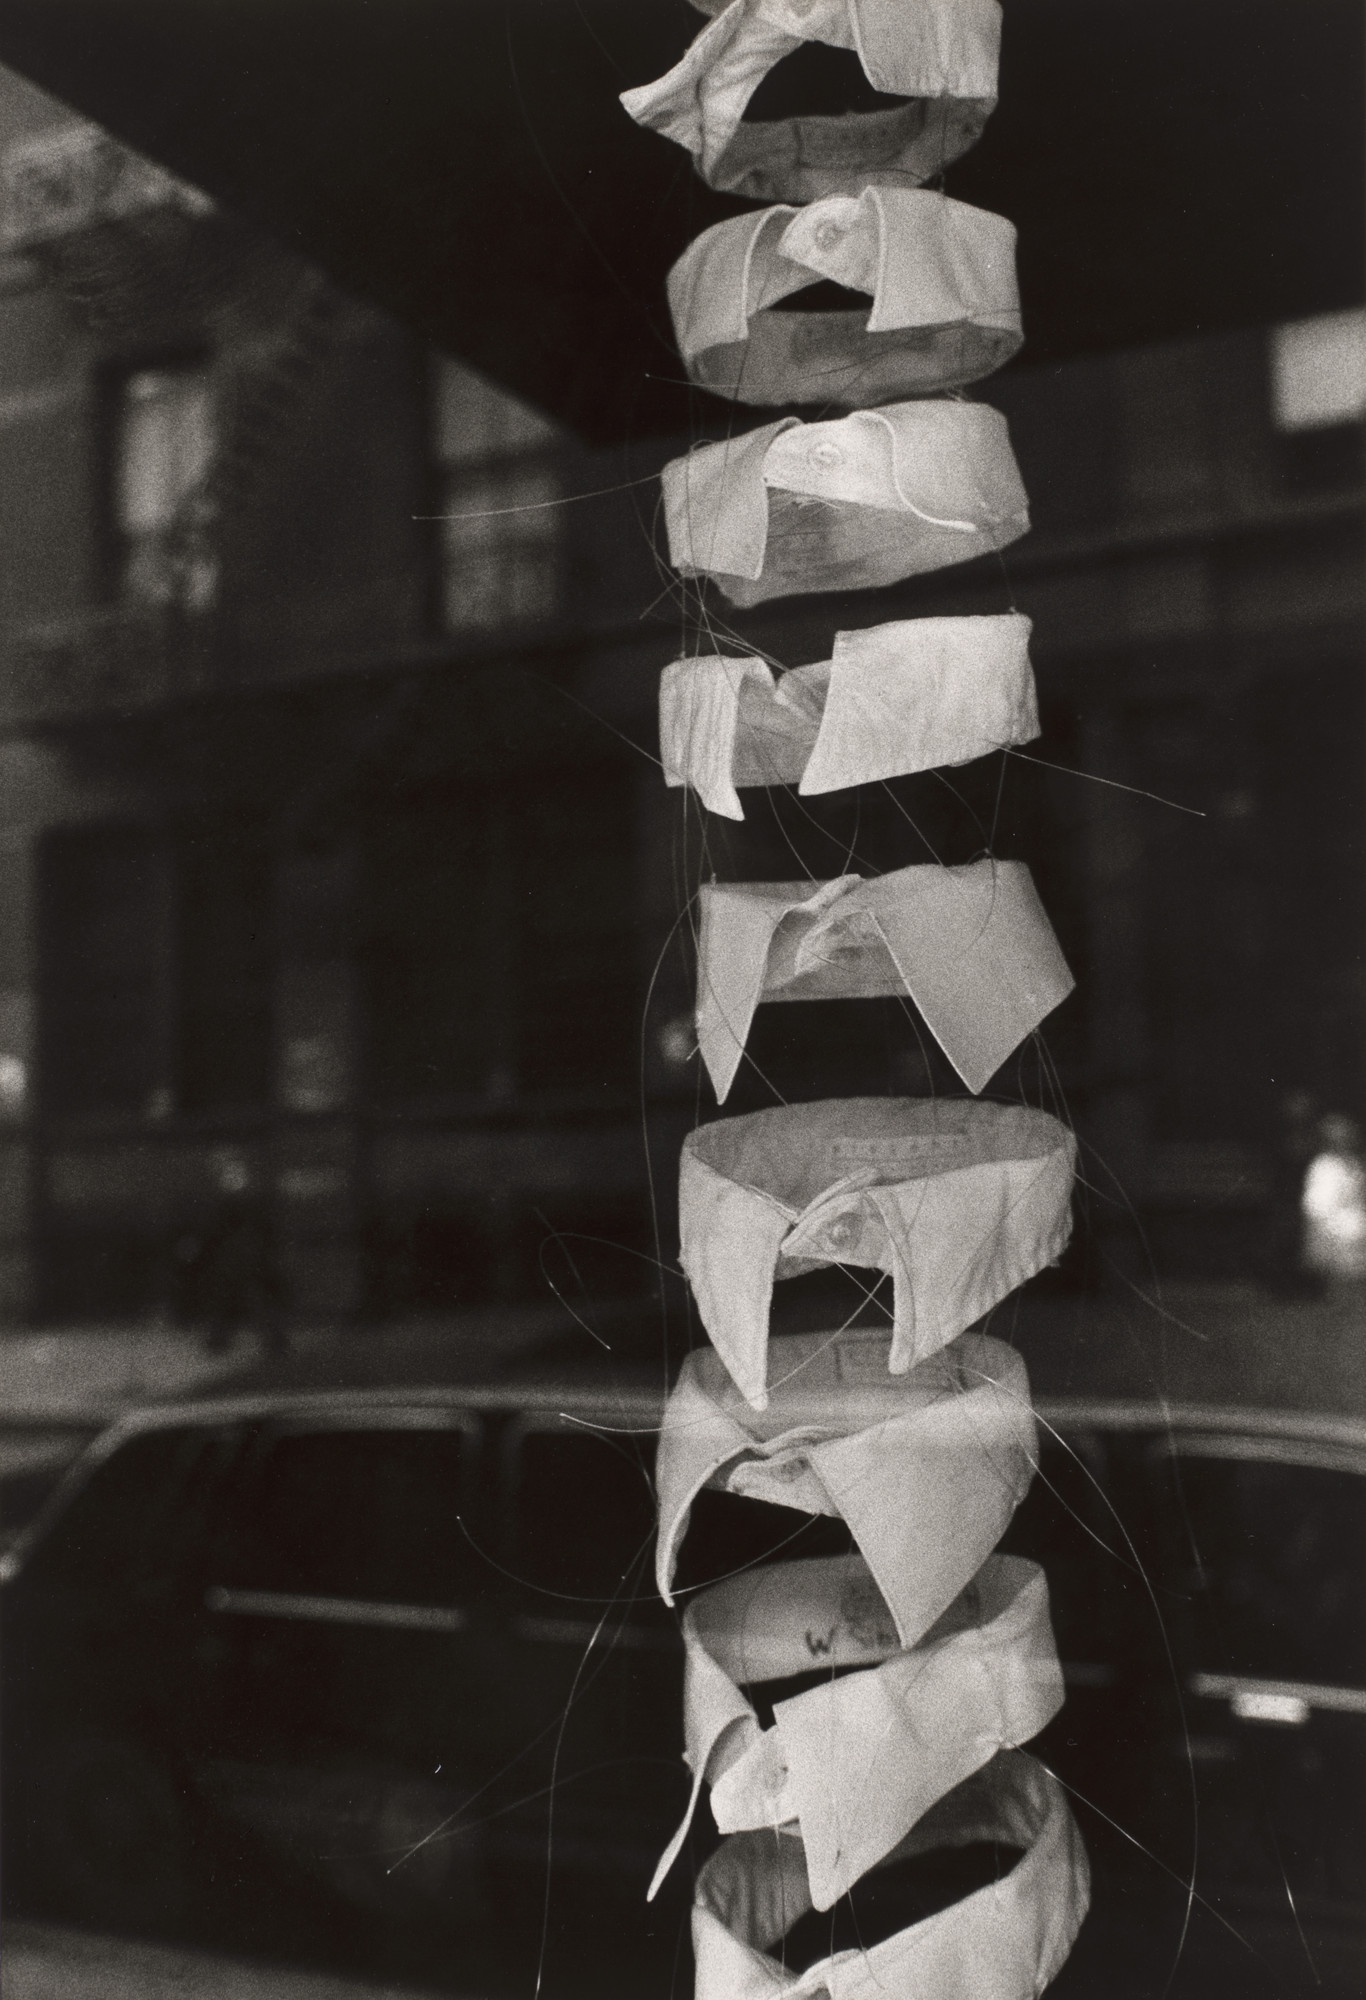 Charles Martin. Collared: New York City. 1996